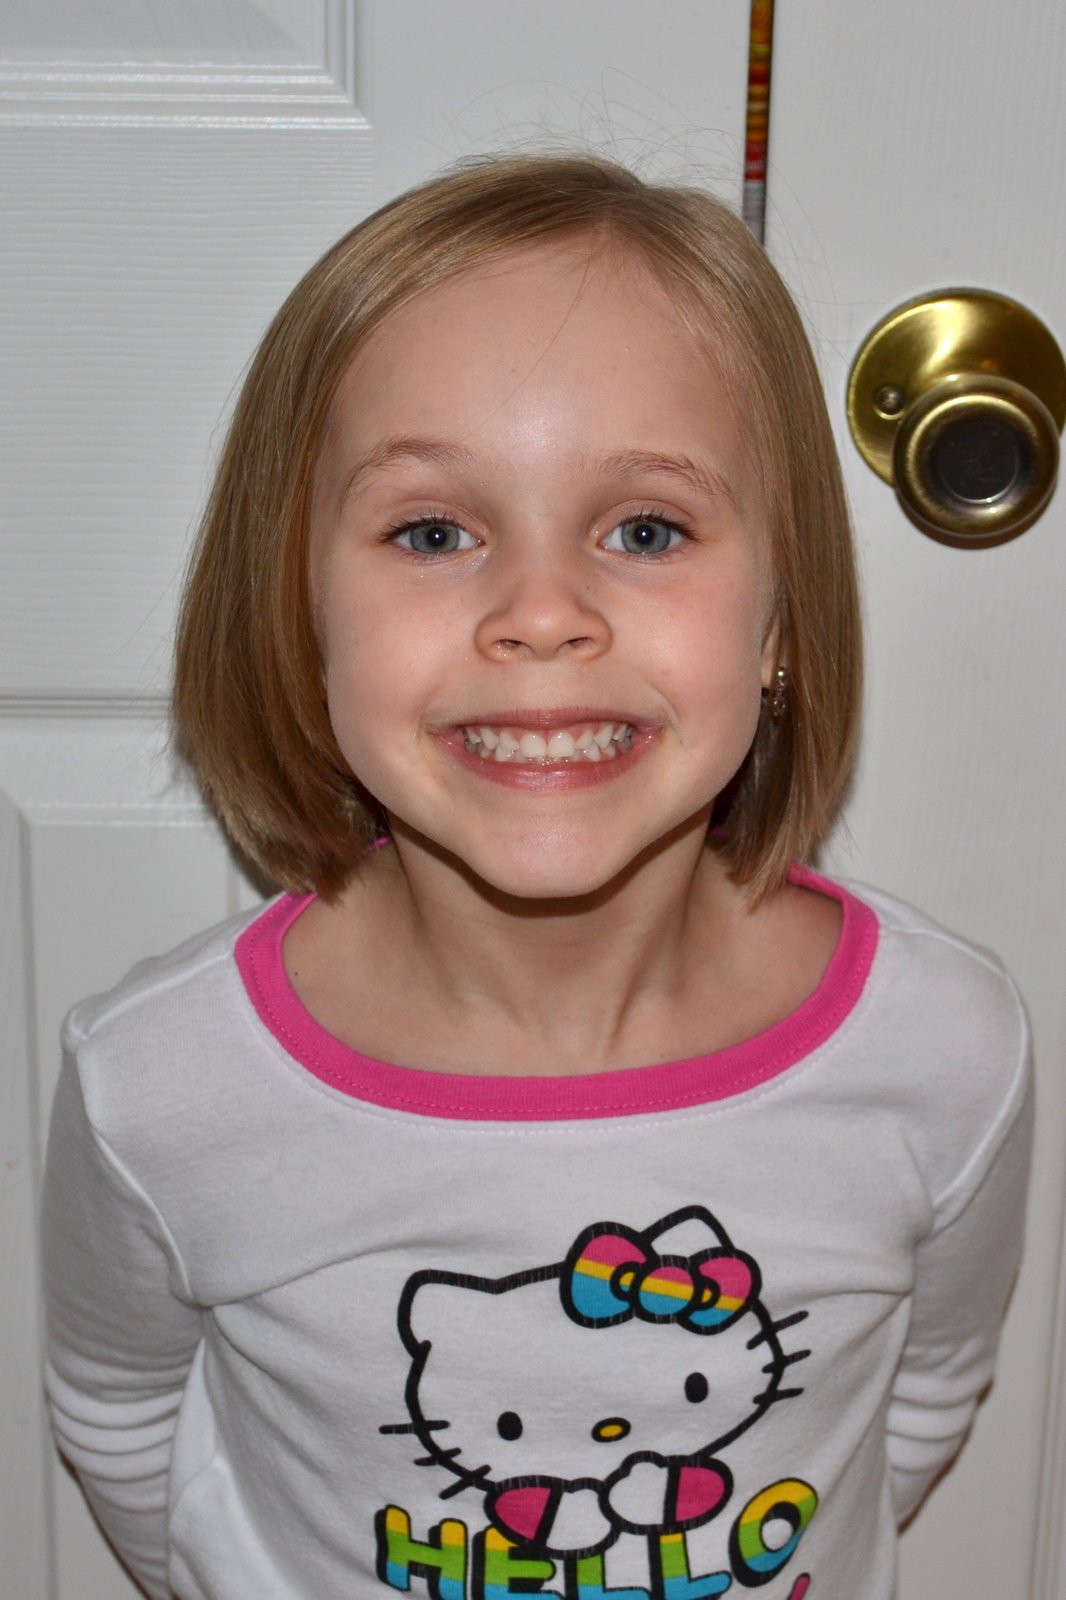 Best ideas about Haircuts For Kids Girls . Save or Pin 20 Kids Haircuts Now.